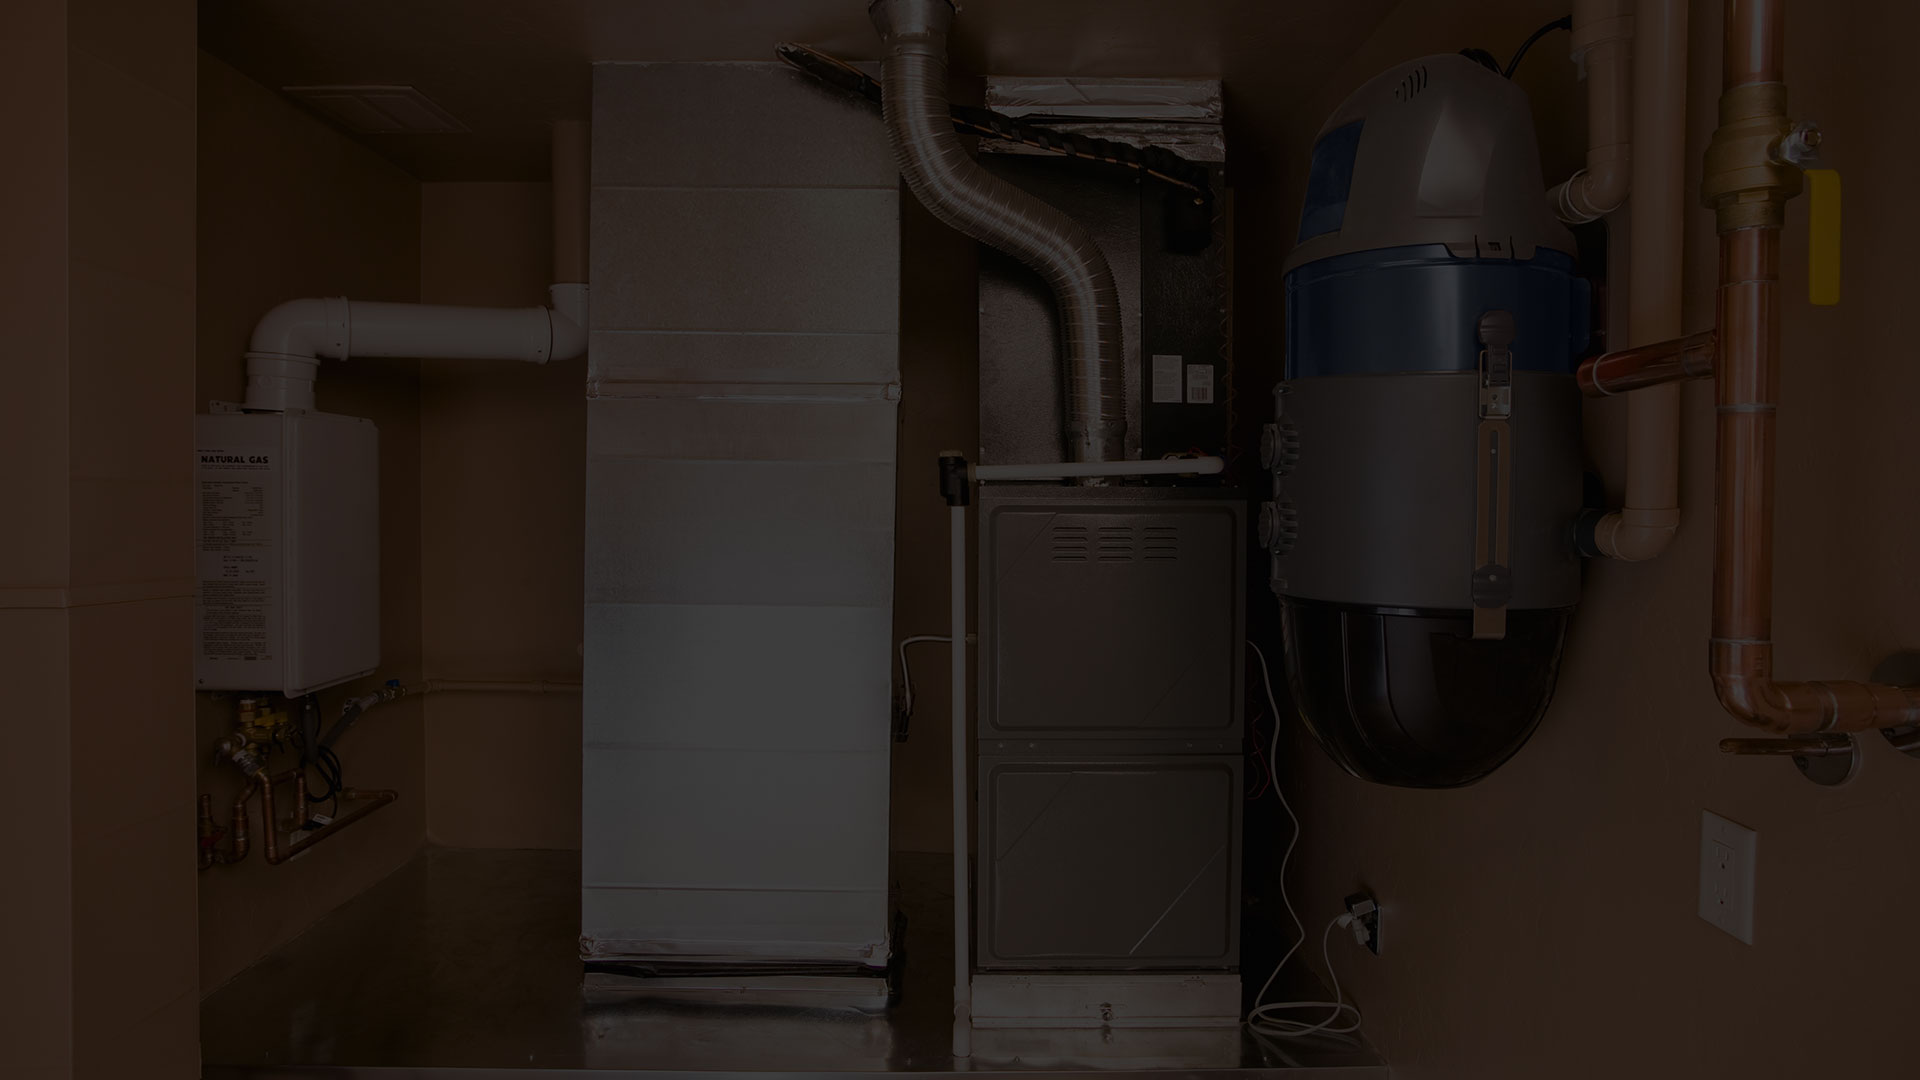 Hometown Heating Services Co. HVAC Services